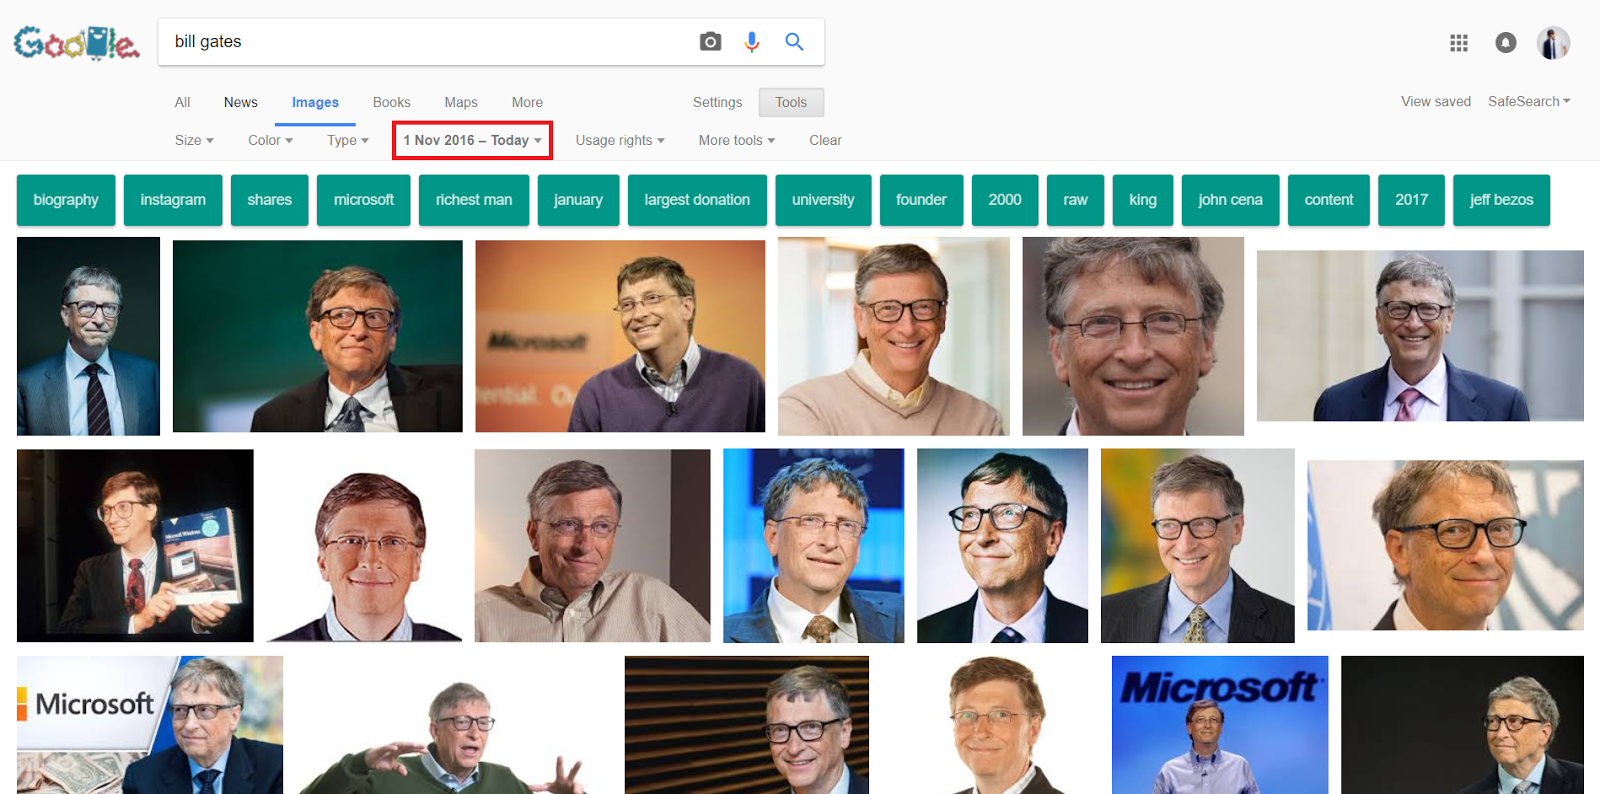 Top Bill Gates images in 2016 by Google Image Advanced Search